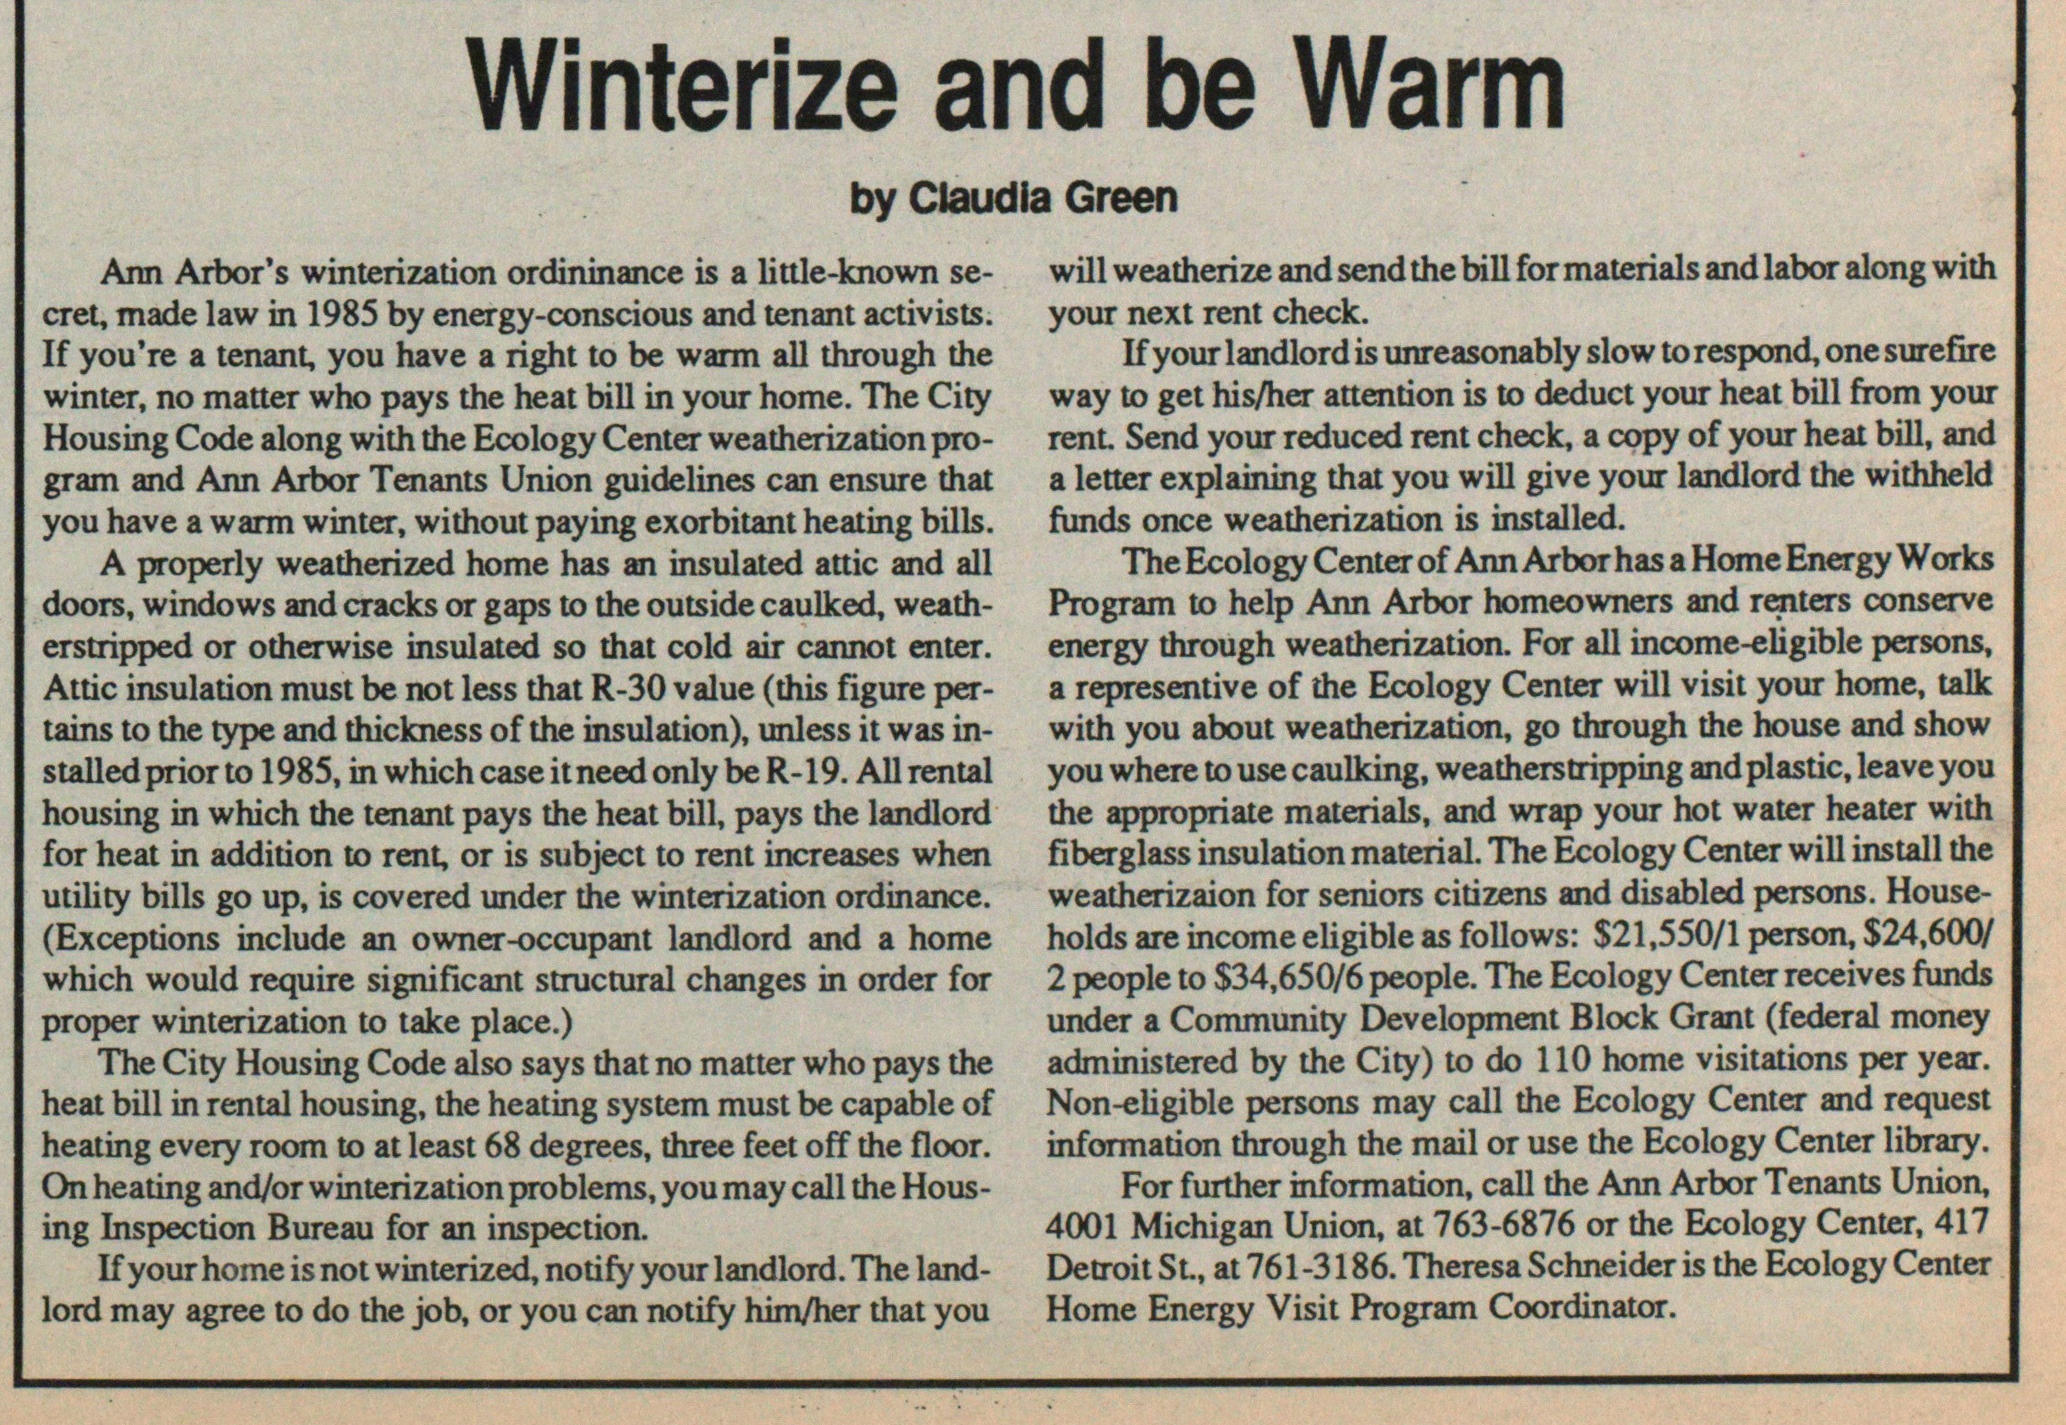 Winterize And Be Warm image